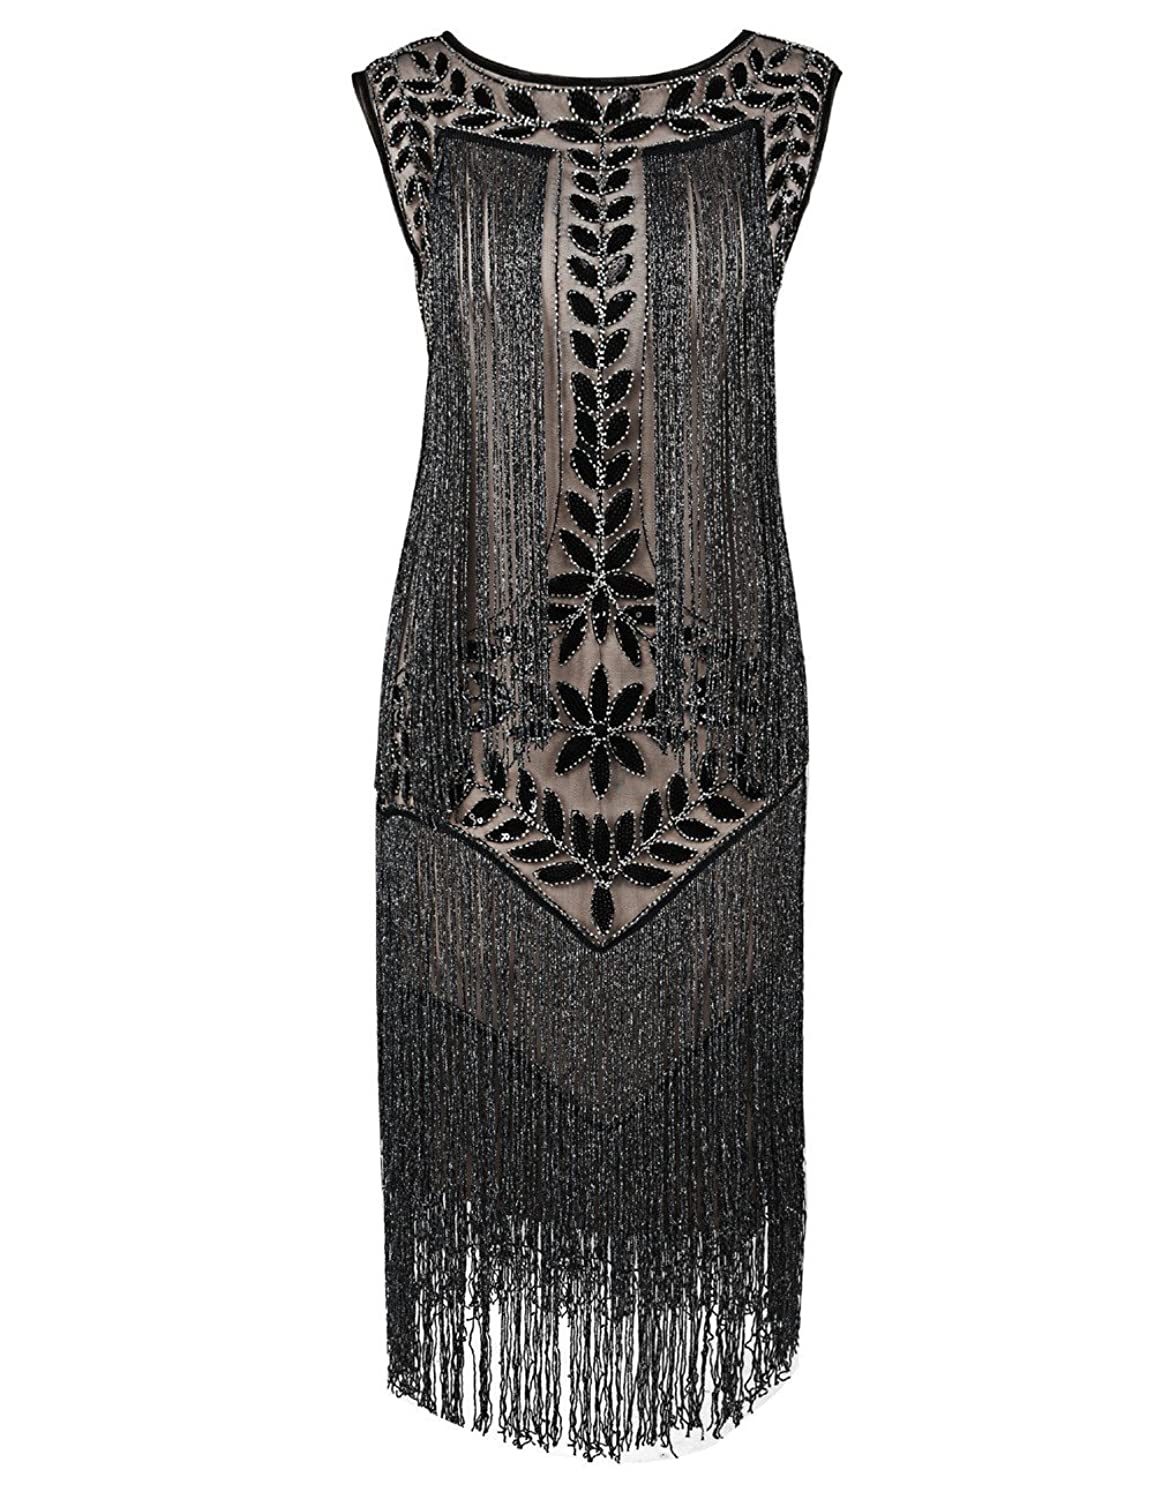 Sequin beads. Imported Zipper closure 1920s Style Gatsby Dress with  flattering drop waist design. Boat neck f363275847d4